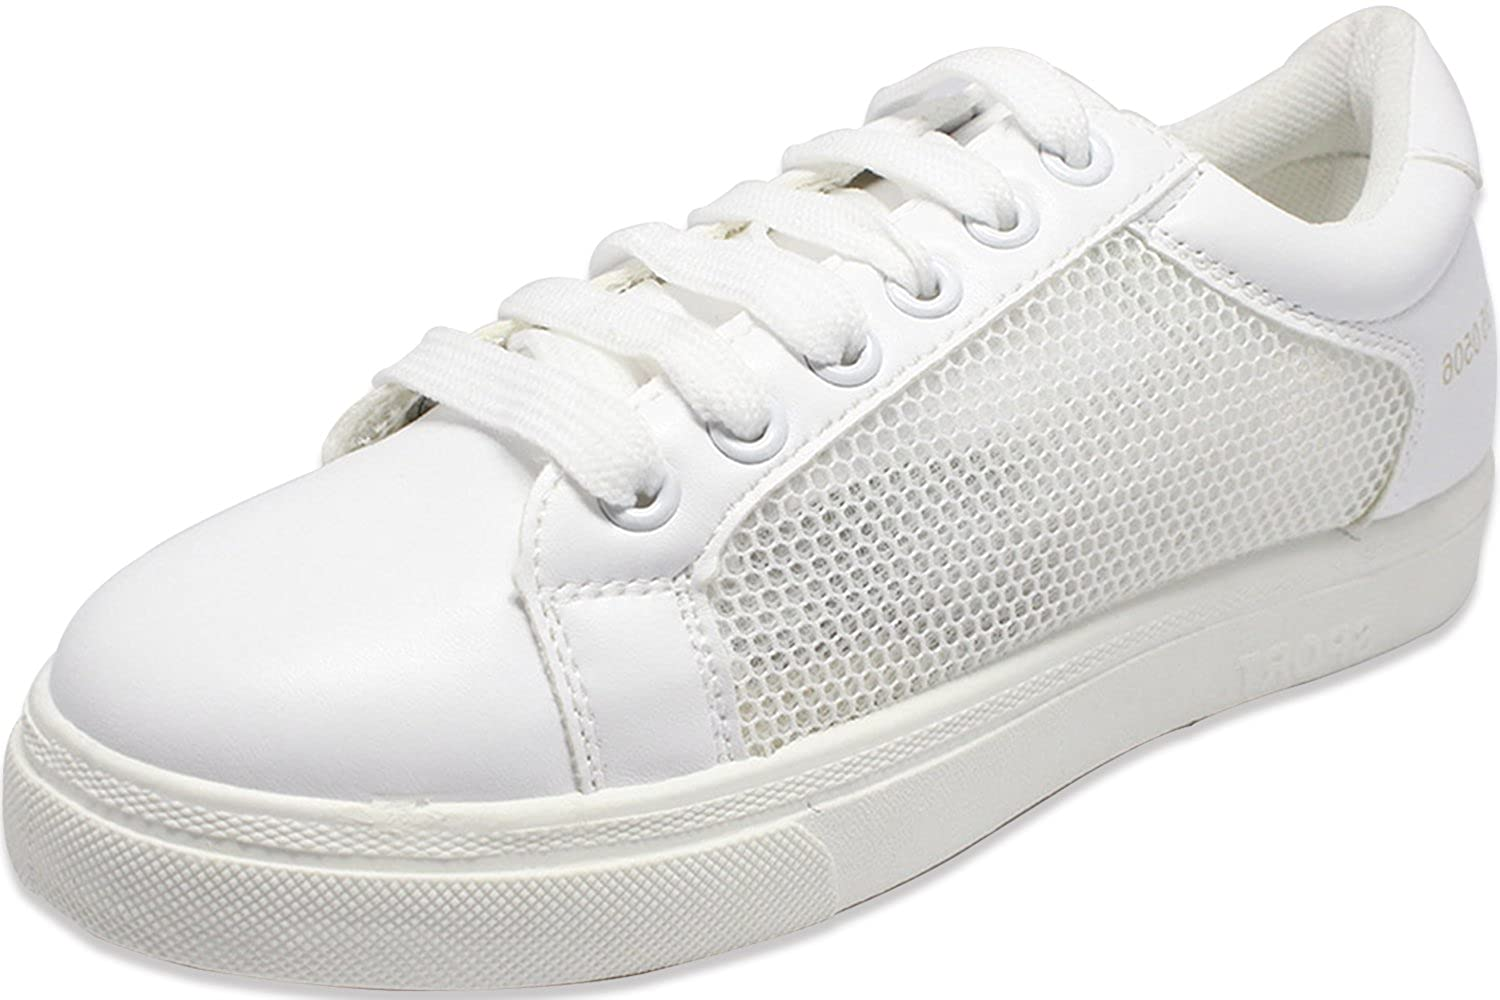 Couch Potato White Mesh Women Sneakers  Buy Online at Low Prices in India -  Amazon.in 562a684c2